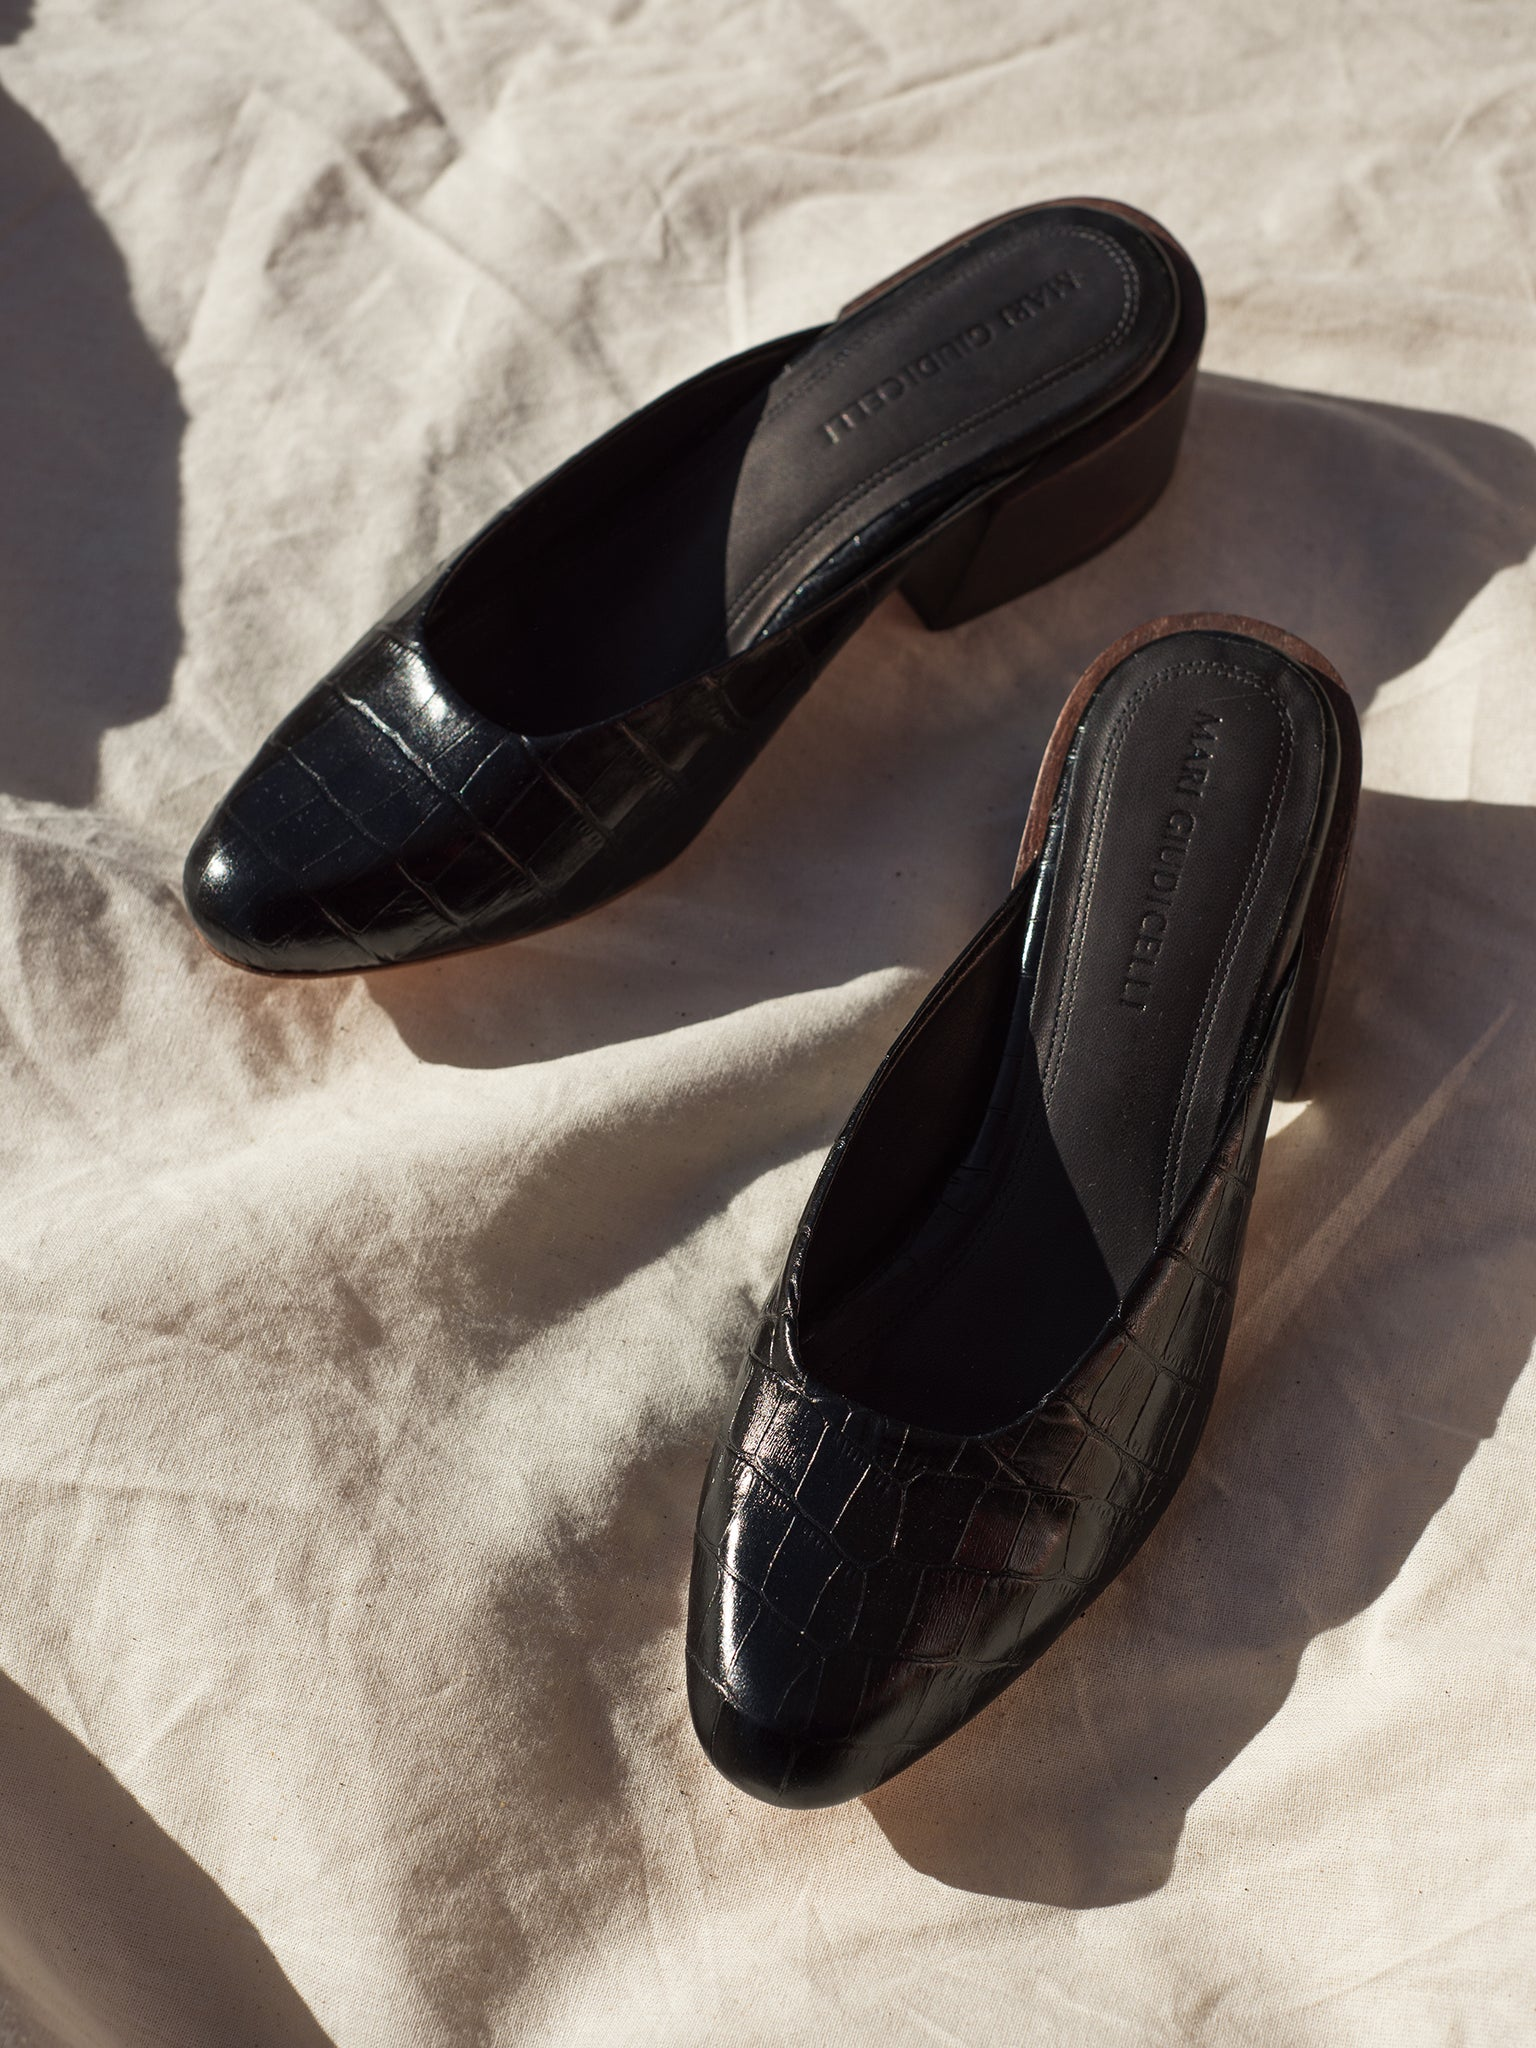 MARI GIUDICELLI | Leather shoes at The UNDONE